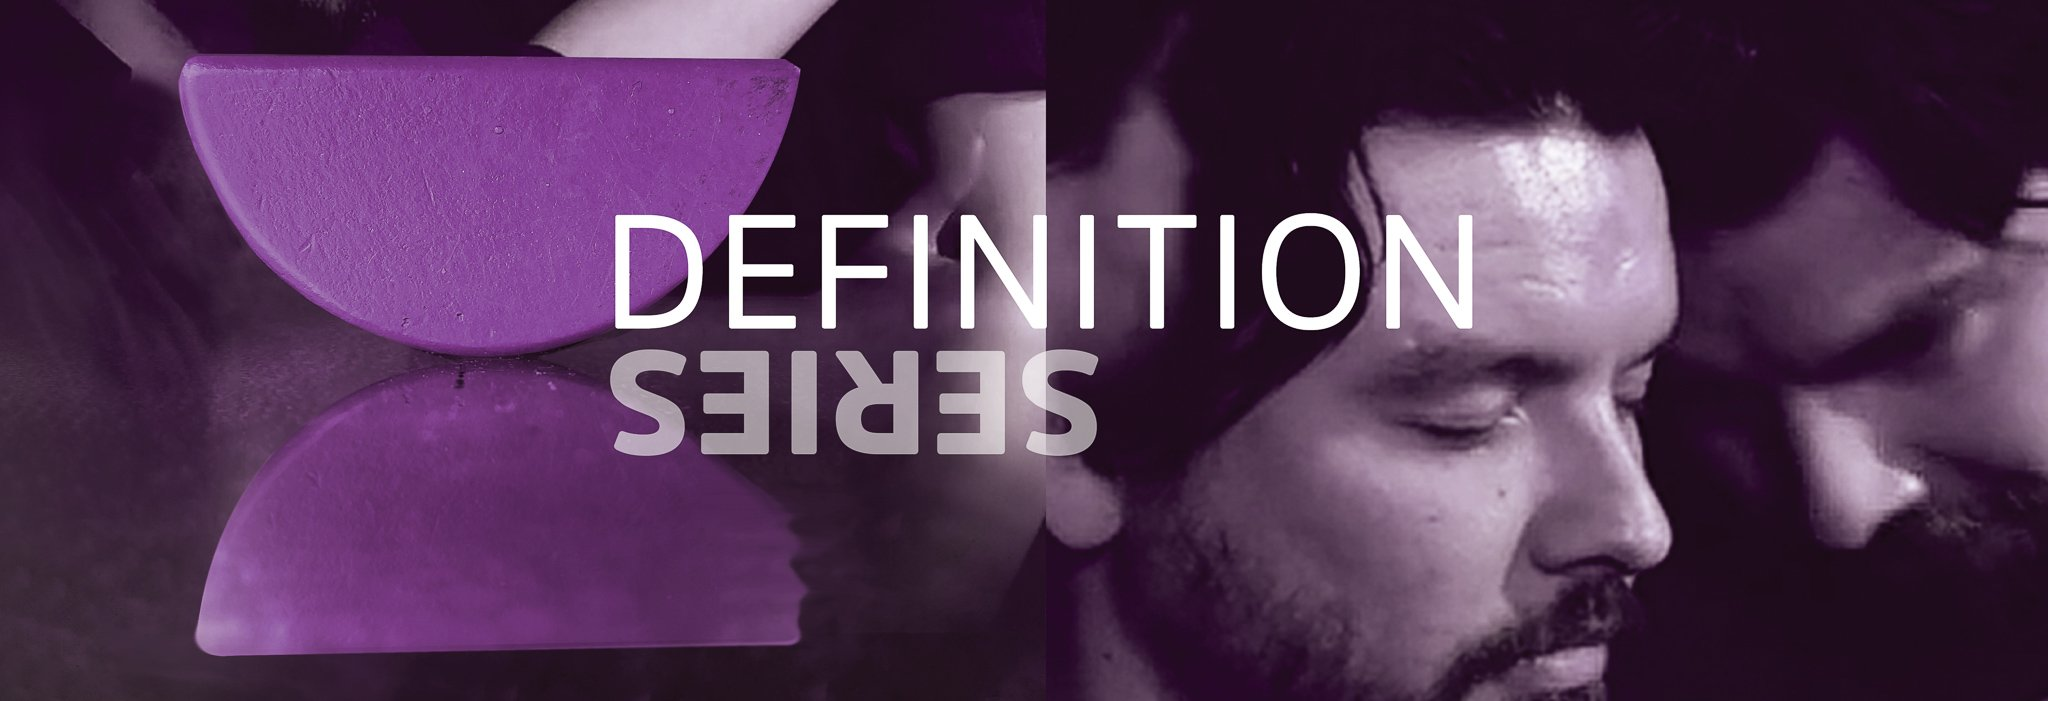 DEFINITION SERIES